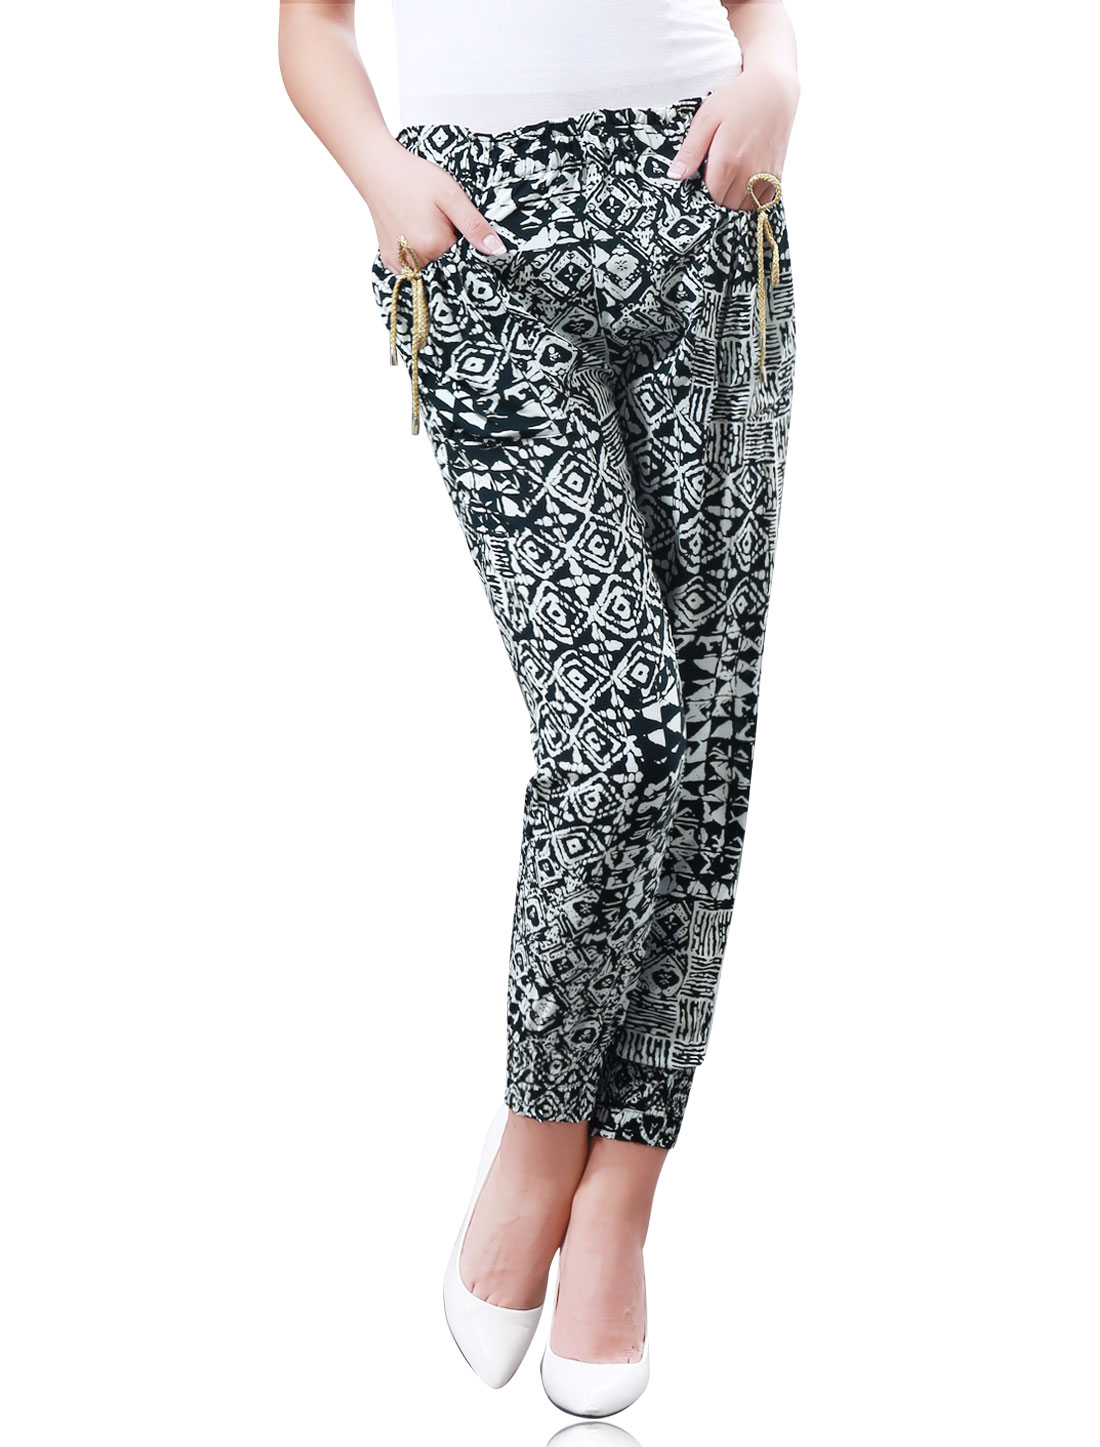 Women Tight Cuffs All Over Geometric Novelty Print Jogger Pants Navy Blue White XL